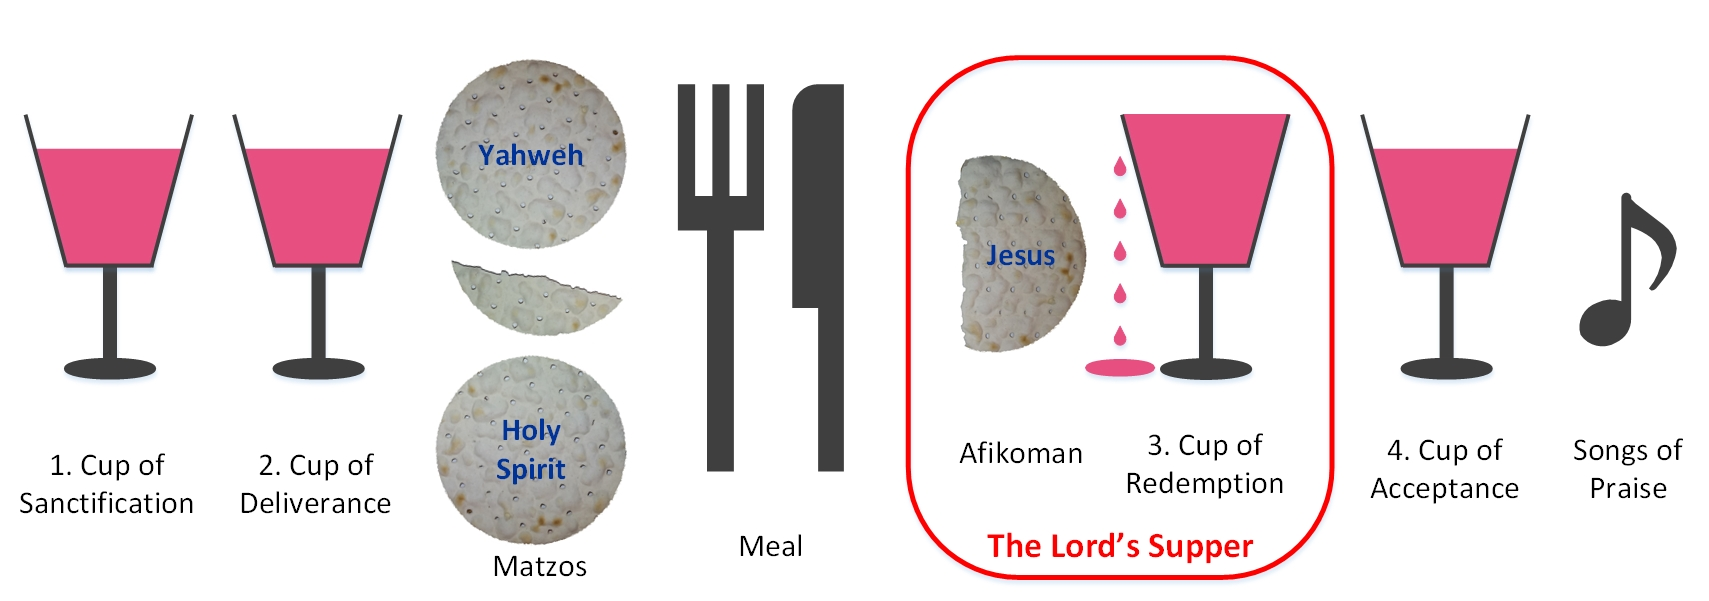 Diagram: Seder evening, Passover meal, Lord's Supper, Last Supper, Holy Communion, Holy Sacrament, Eucharist, 3 matzos, afikoman, 4 cups, cup of sanctification, cup of deliverance, cup of redemption, cup of acceptance